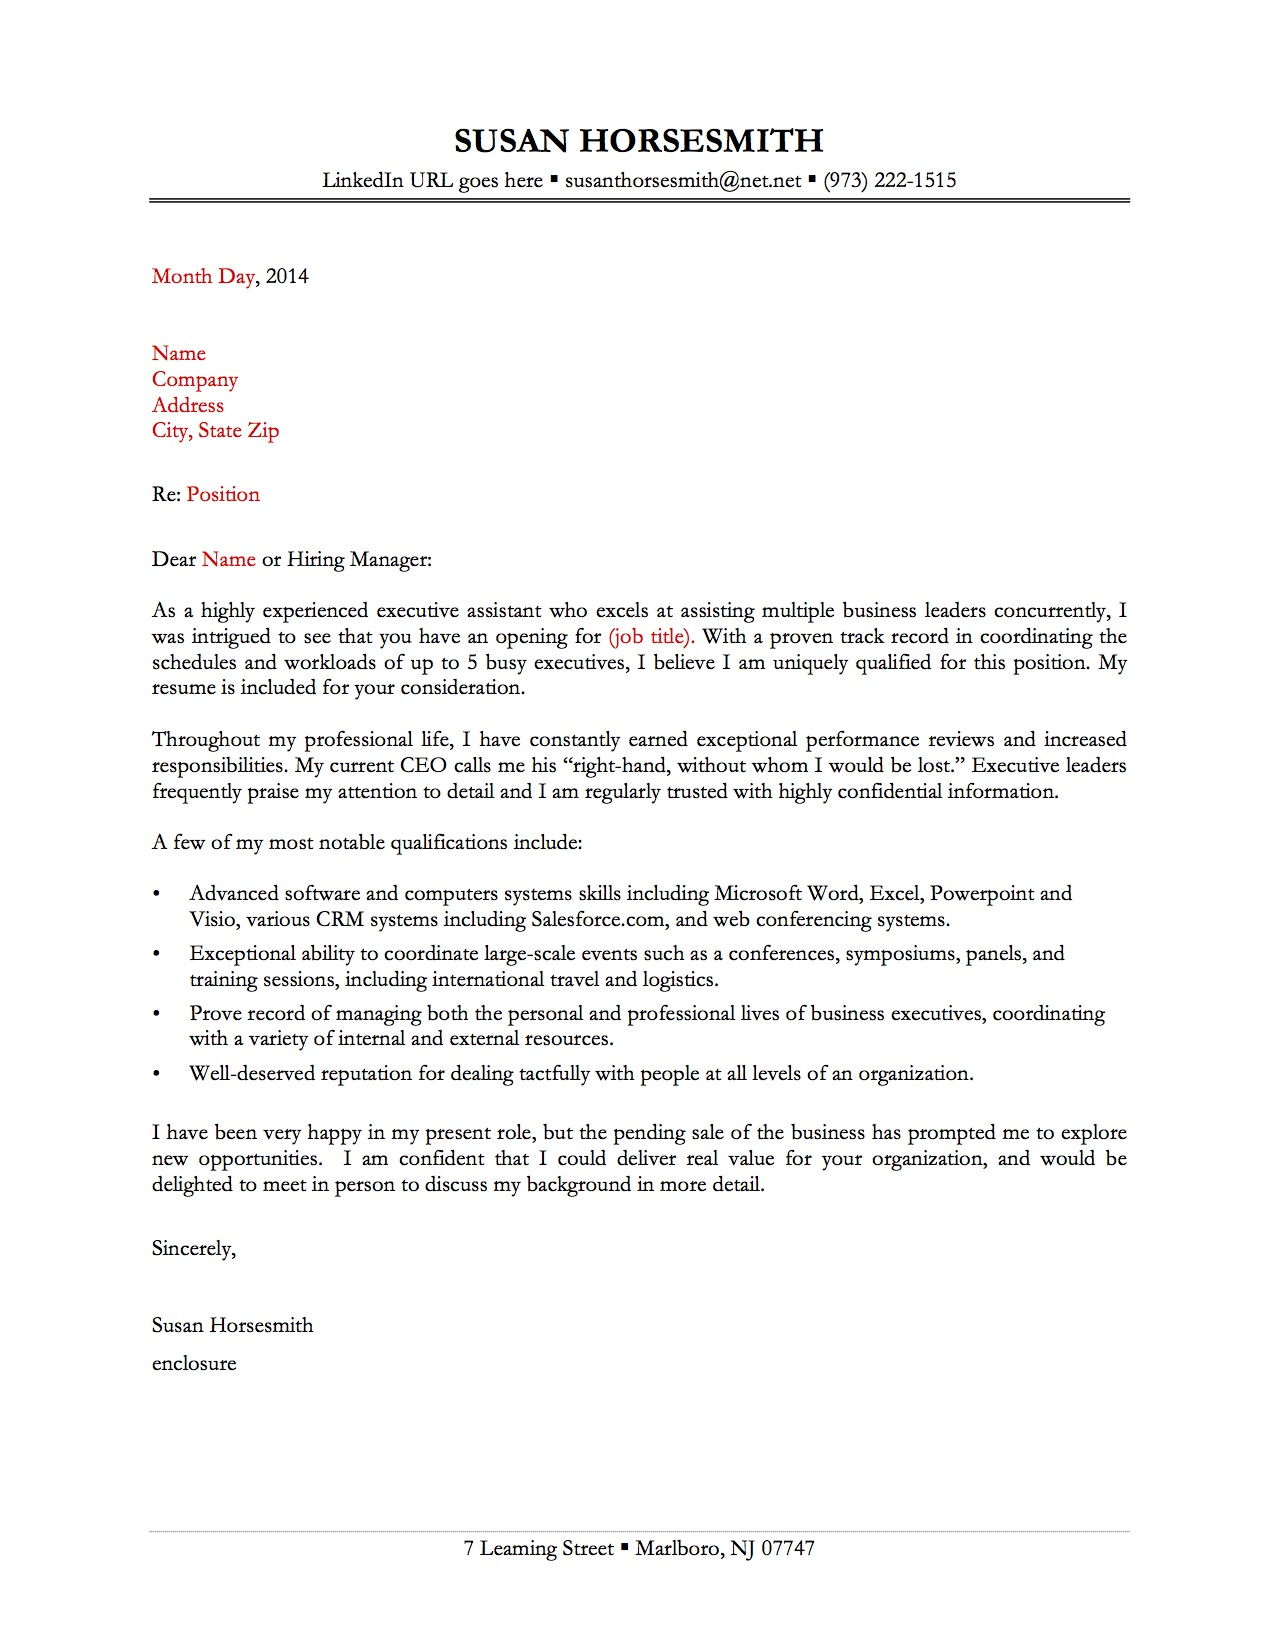 sample cover letter 1 - How To Compose A Cover Letter